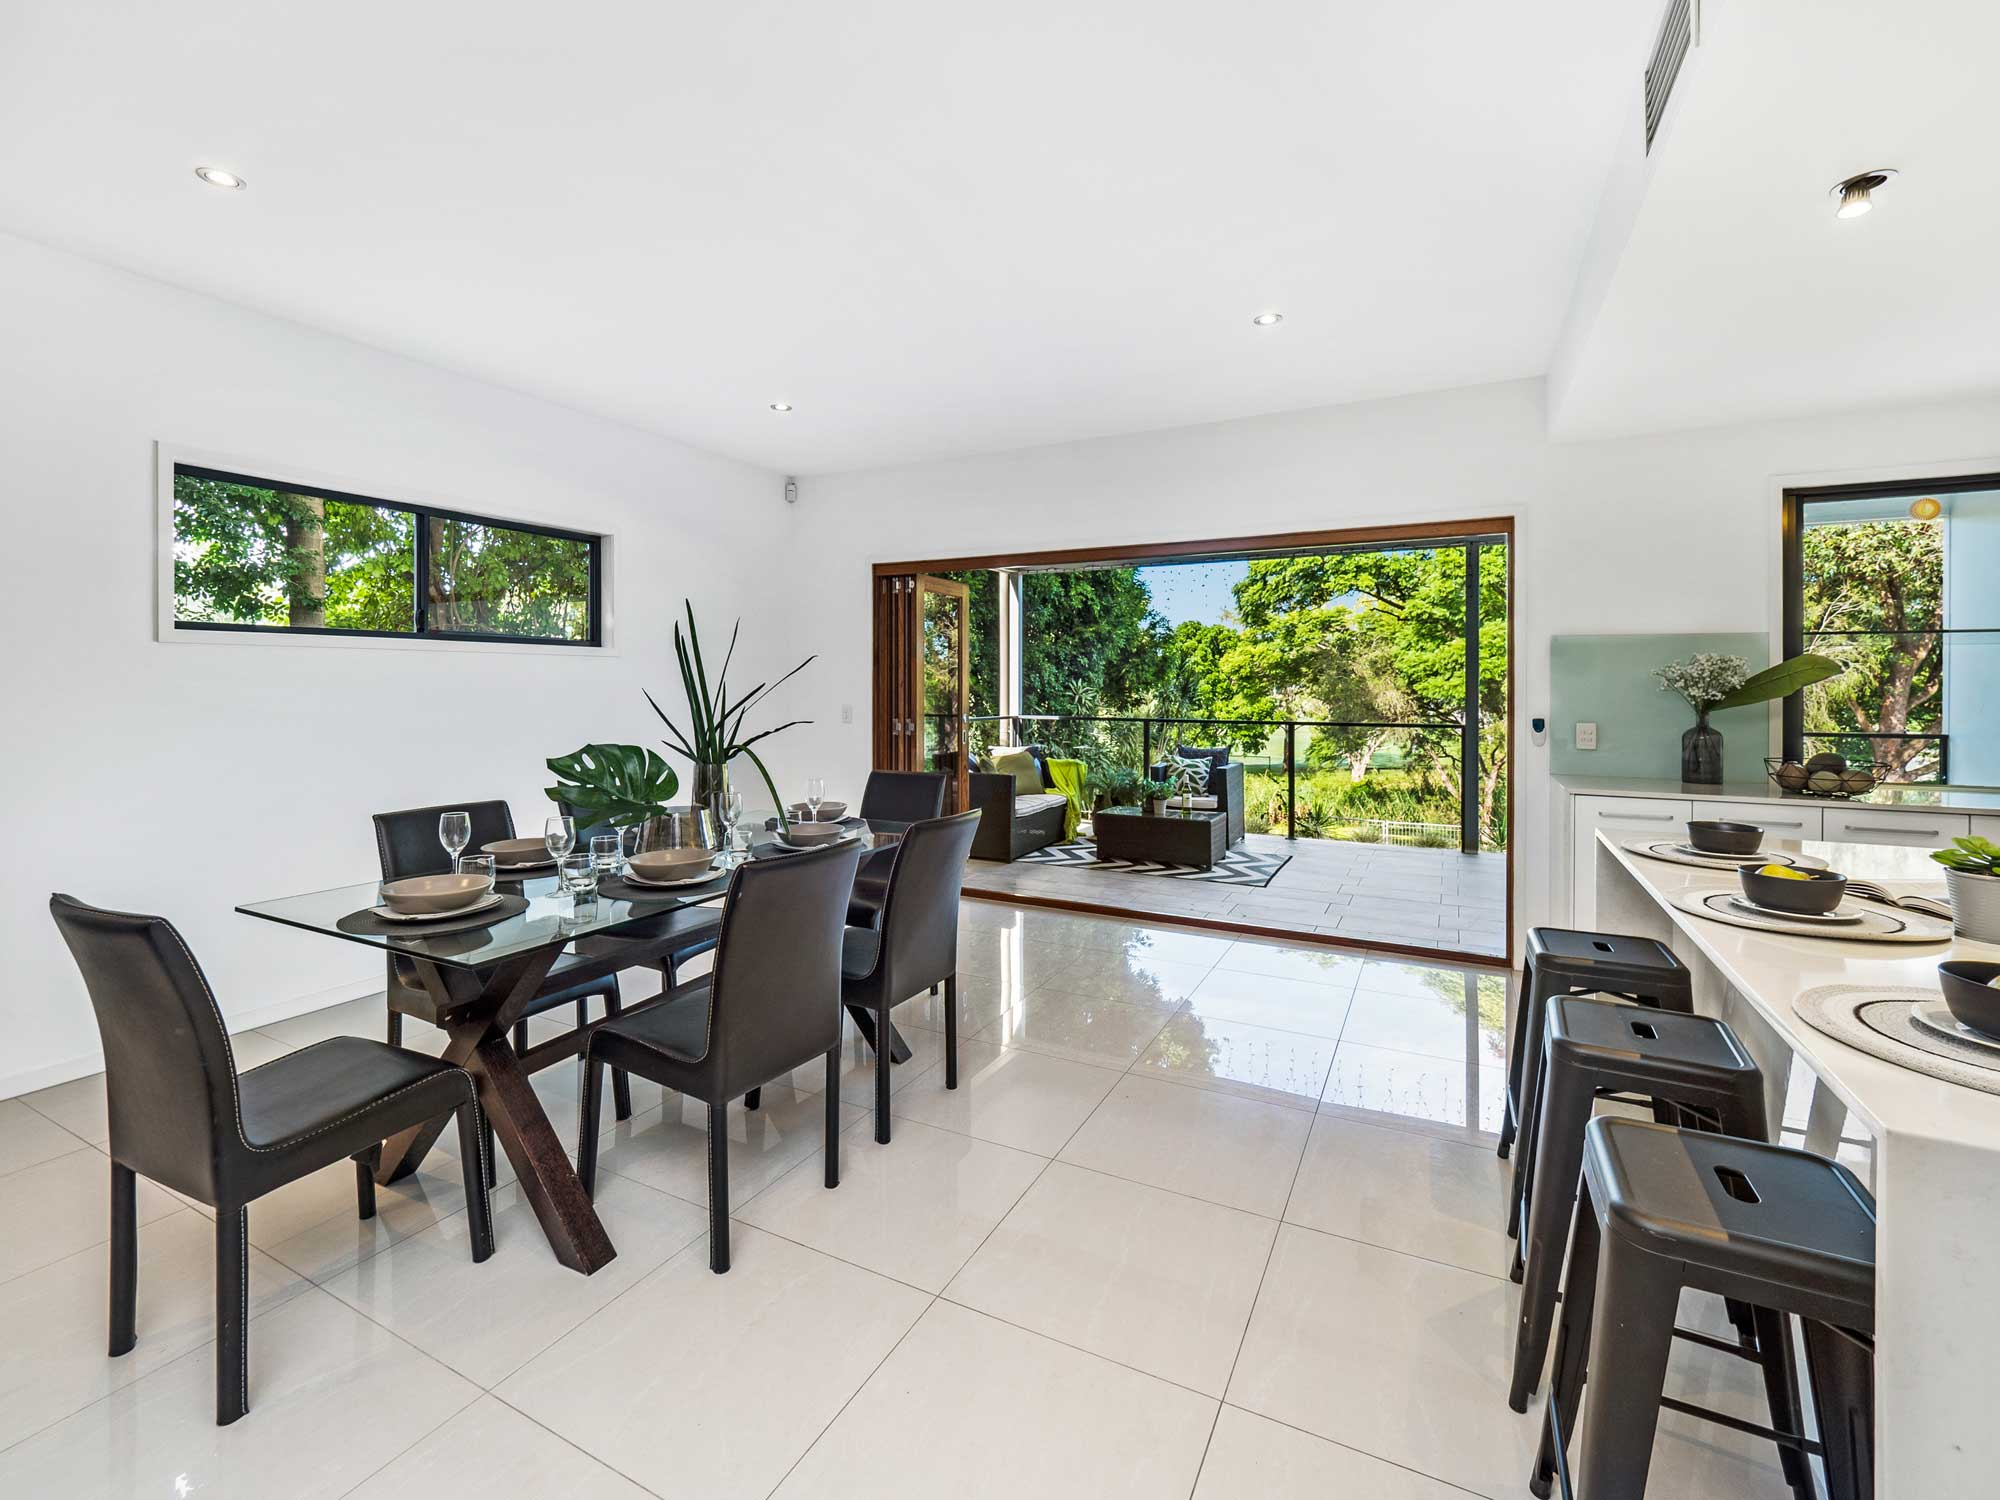 Real estate photography for a new home listing at Wavell Heights, Brisbane north side